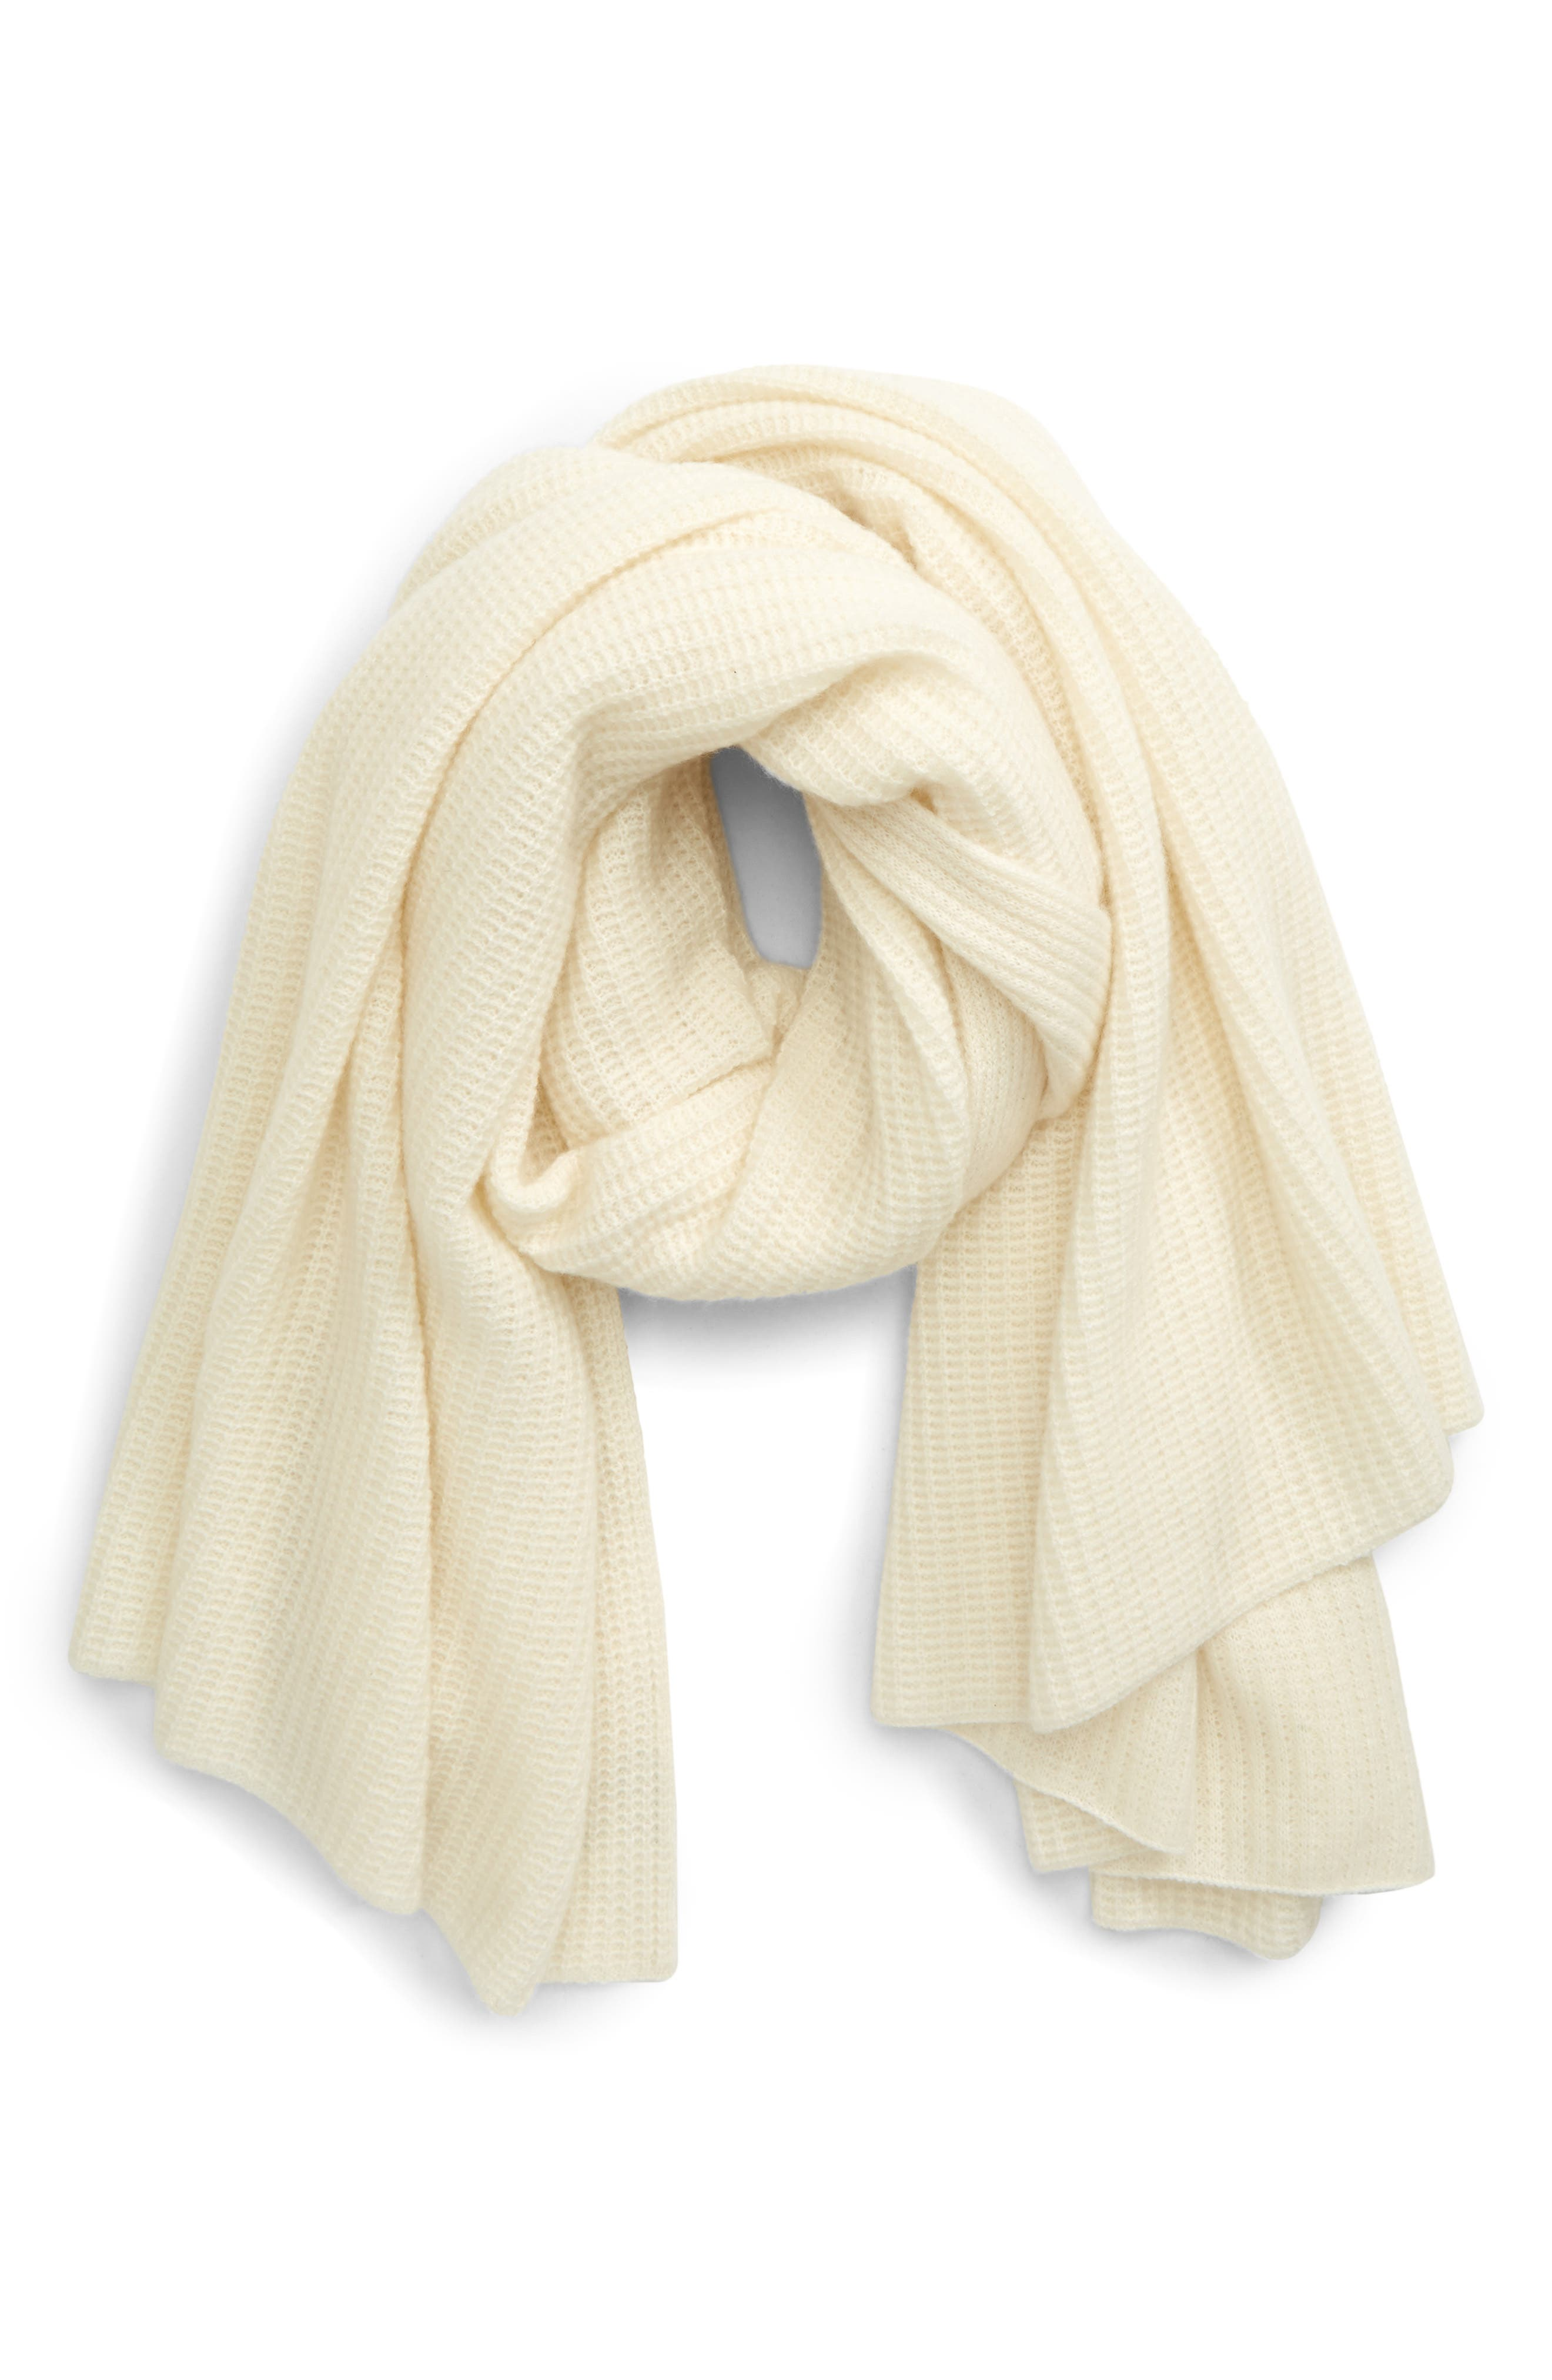 Luxe cashmere elevates a wardrobe-staple knit scarf that doubles its textures with soft ribbing on one side and a classic waffle stitch on the other. Style Name: Halogen Textured Cashmere Scarf. Style Number: 6018089. Available in stores.